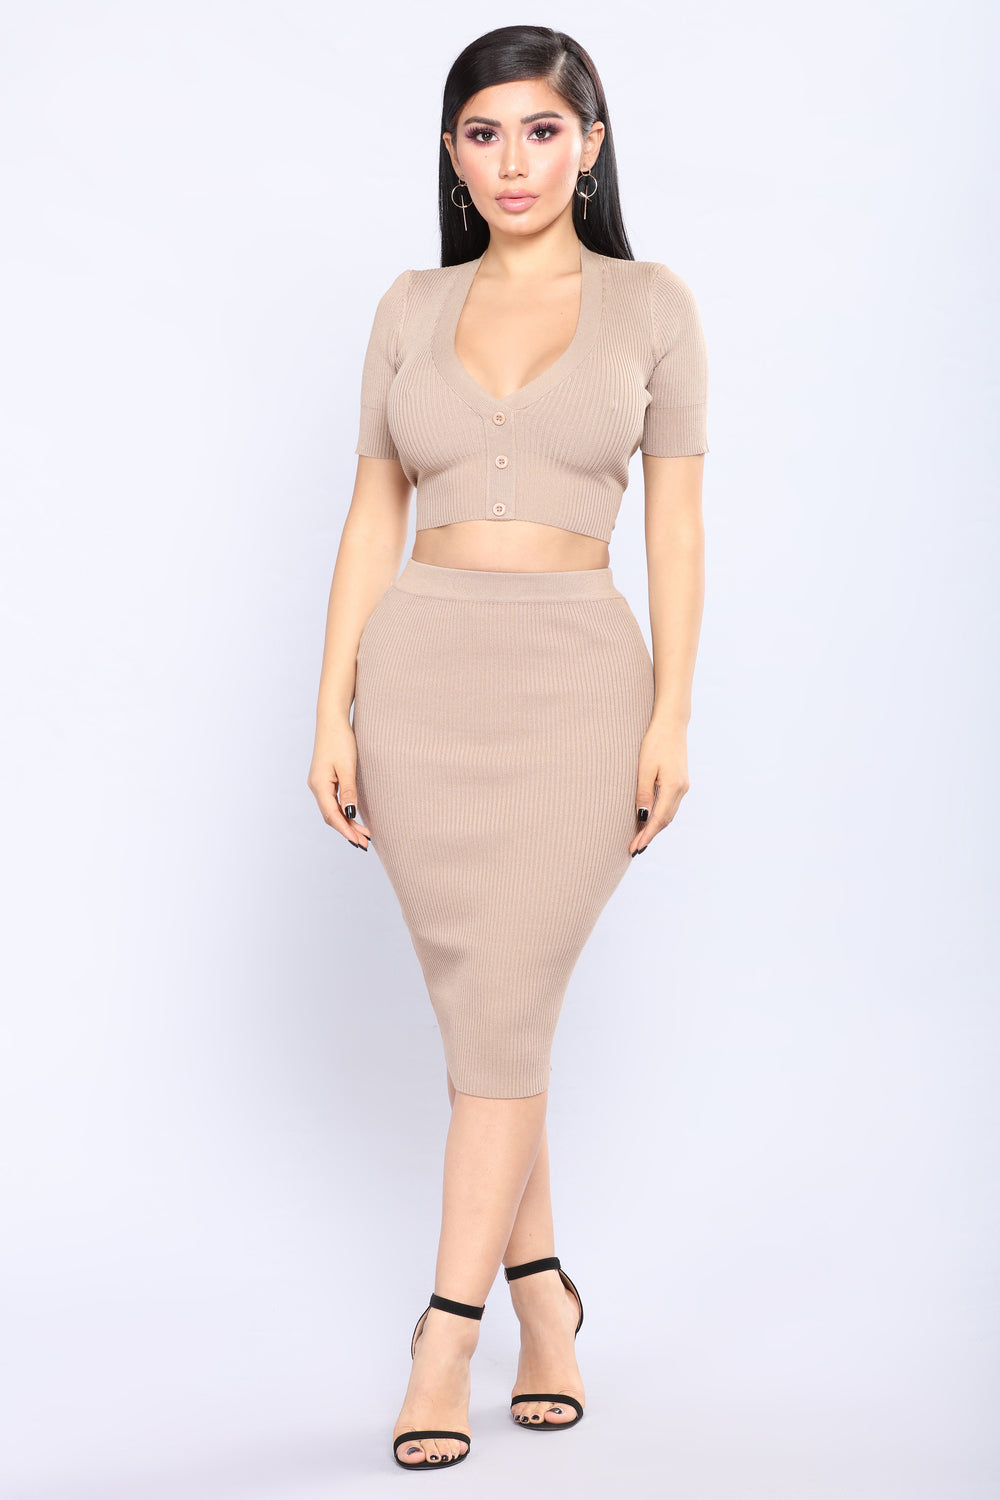 Bad Seed Skirt Set - Mocha